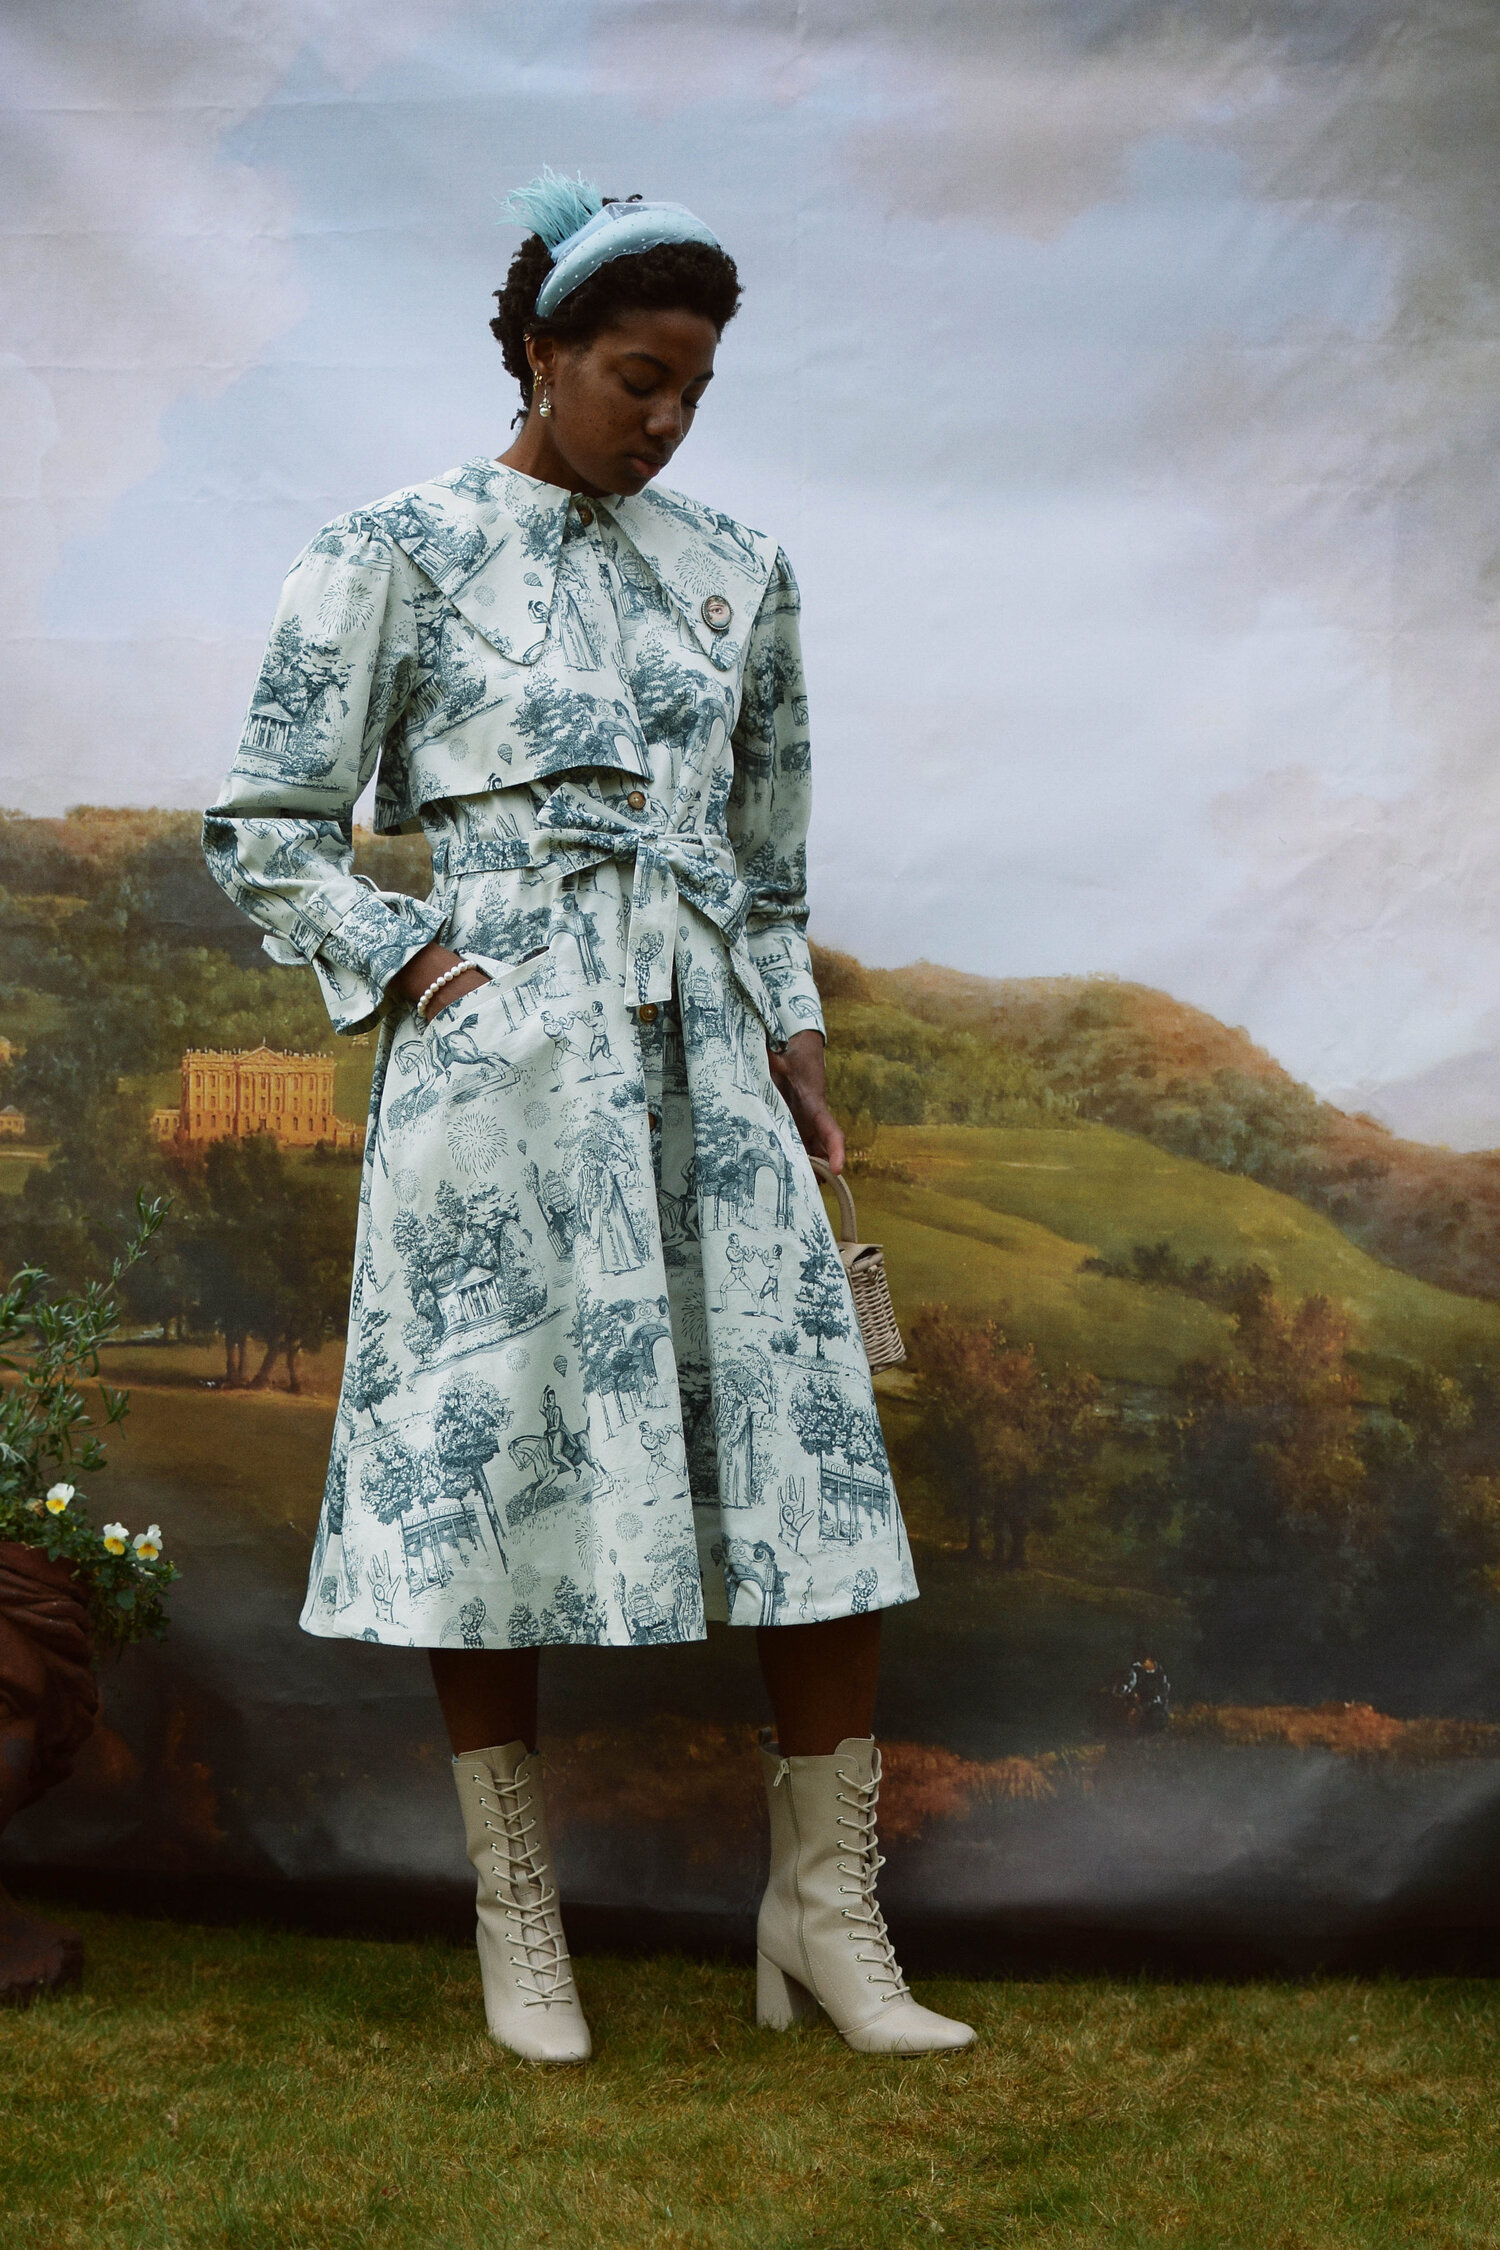 Knightley Coat in Teal Vauxhall Toile